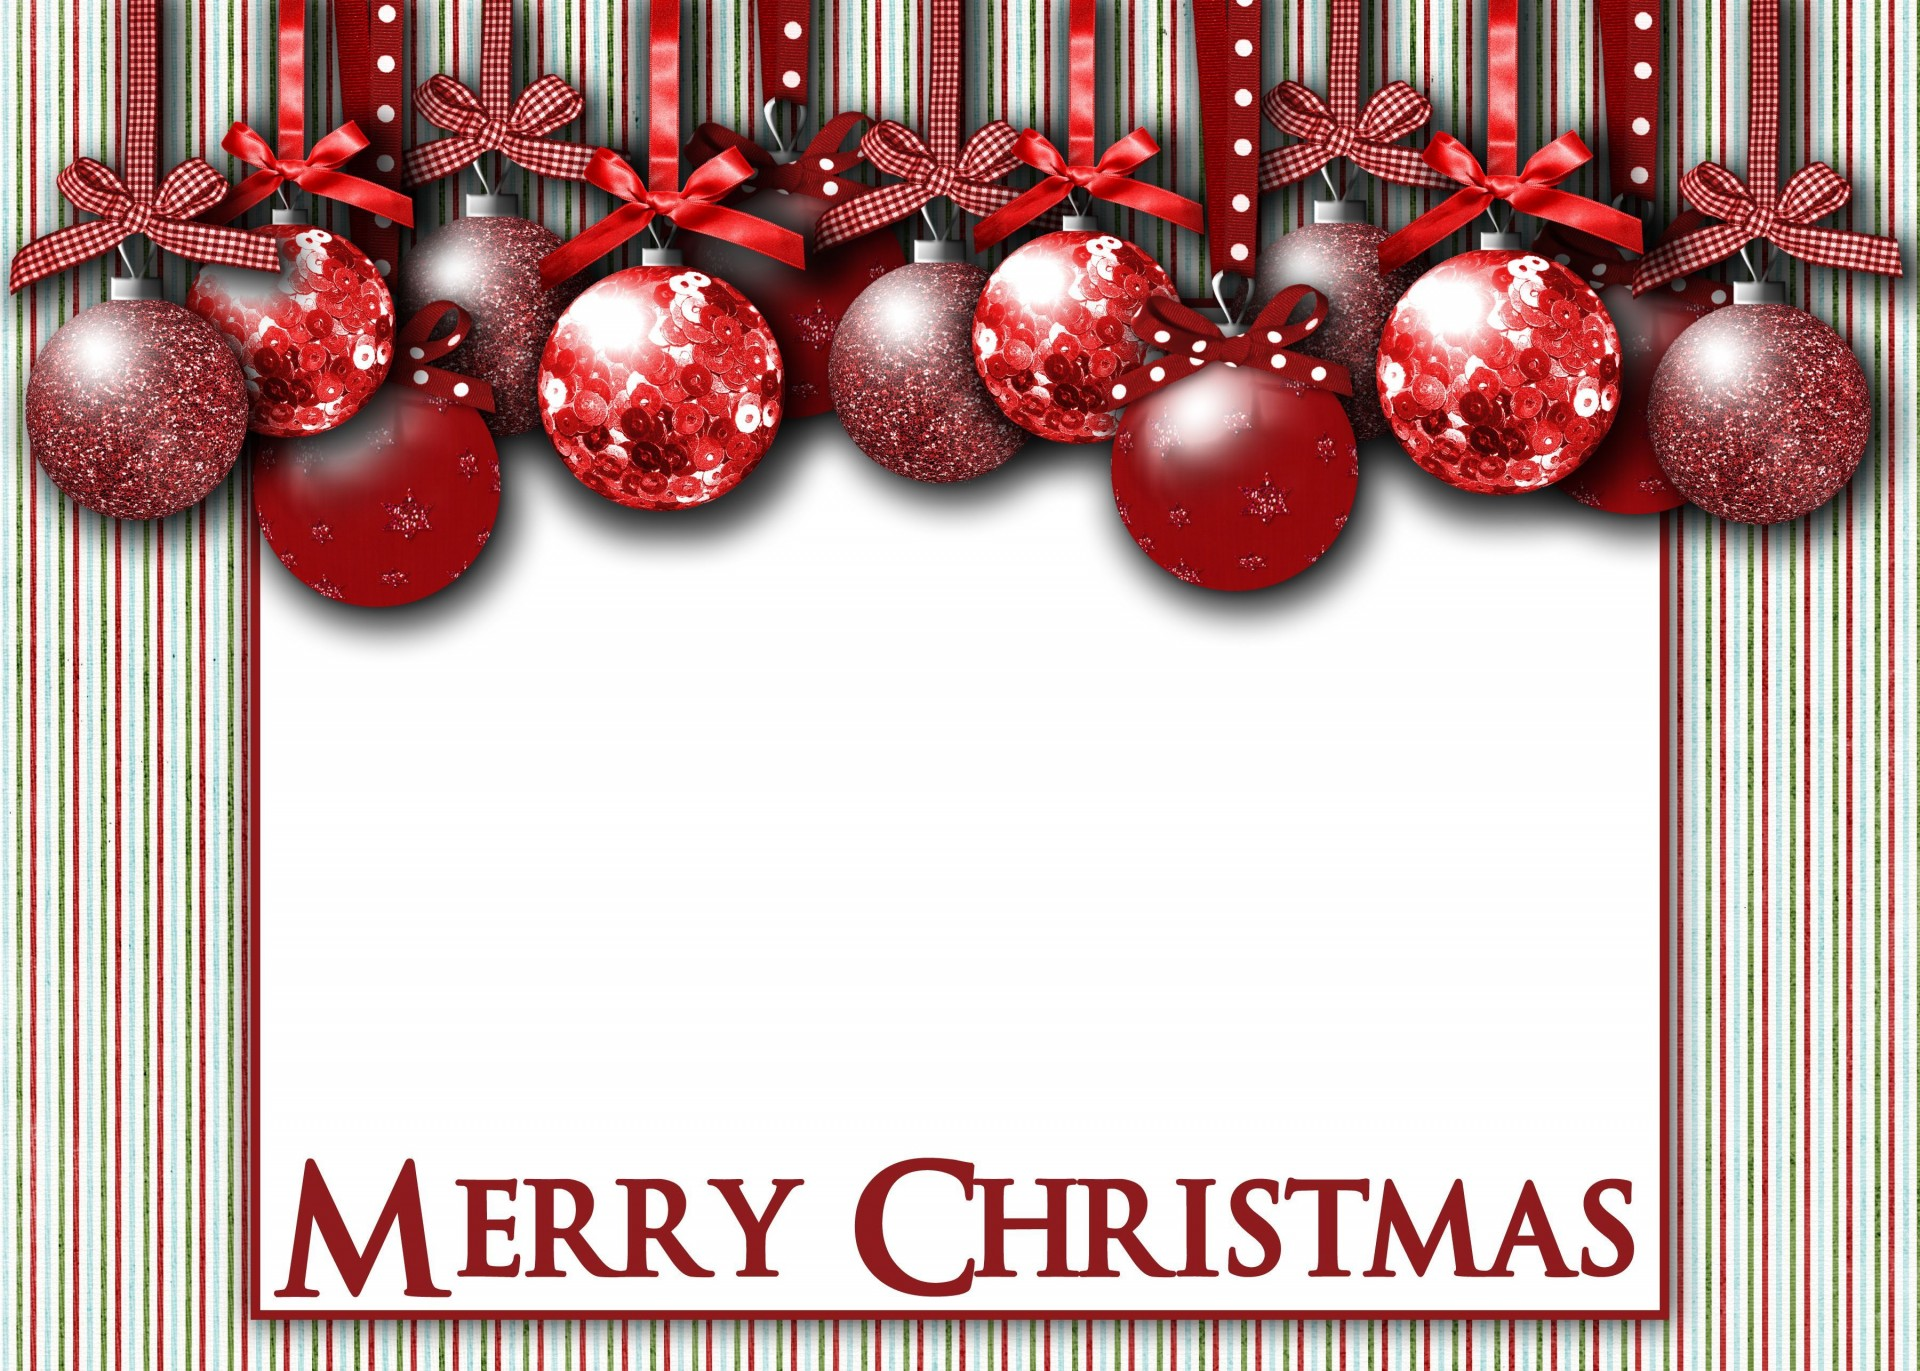 003 Wonderful Christma Card Template Photoshop Photo  Free Download Funny1920